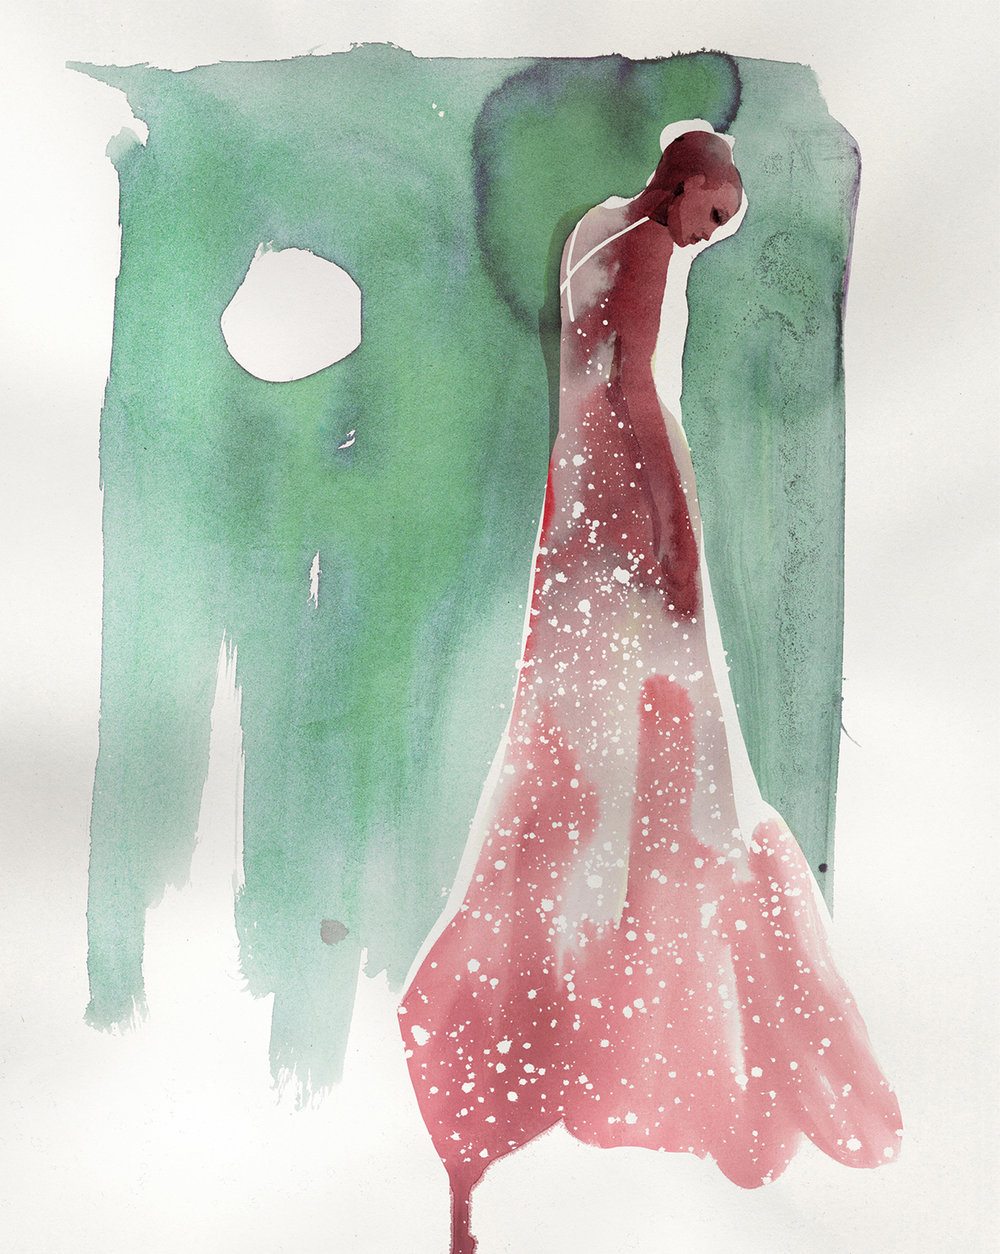 stina-persson-watercolor-ida-sjostedt-evening-gown.jpg